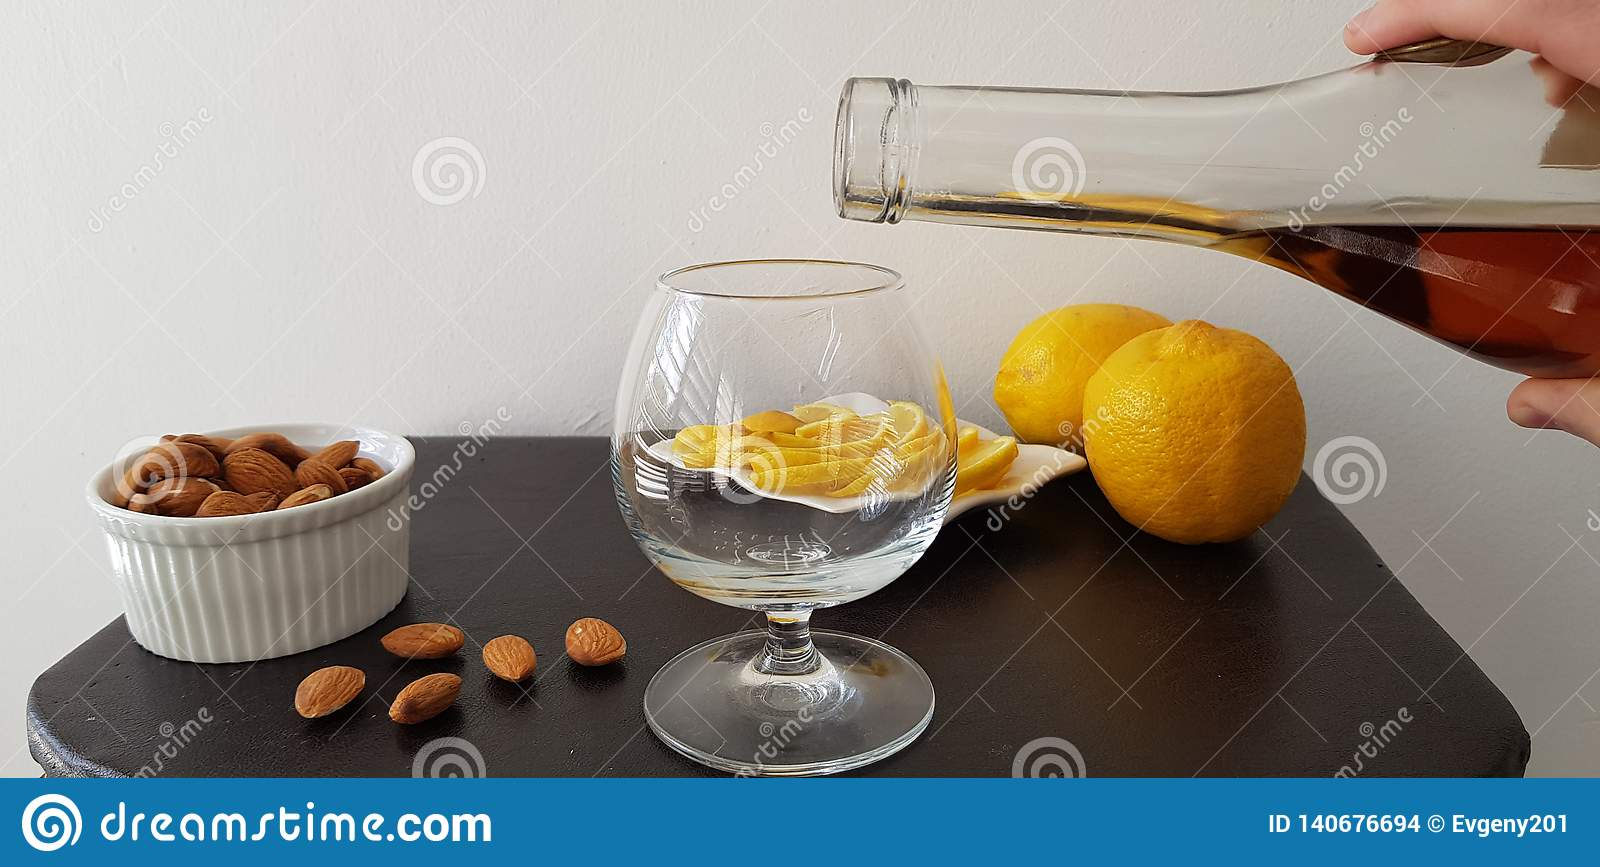 Person pours brandy into a glass